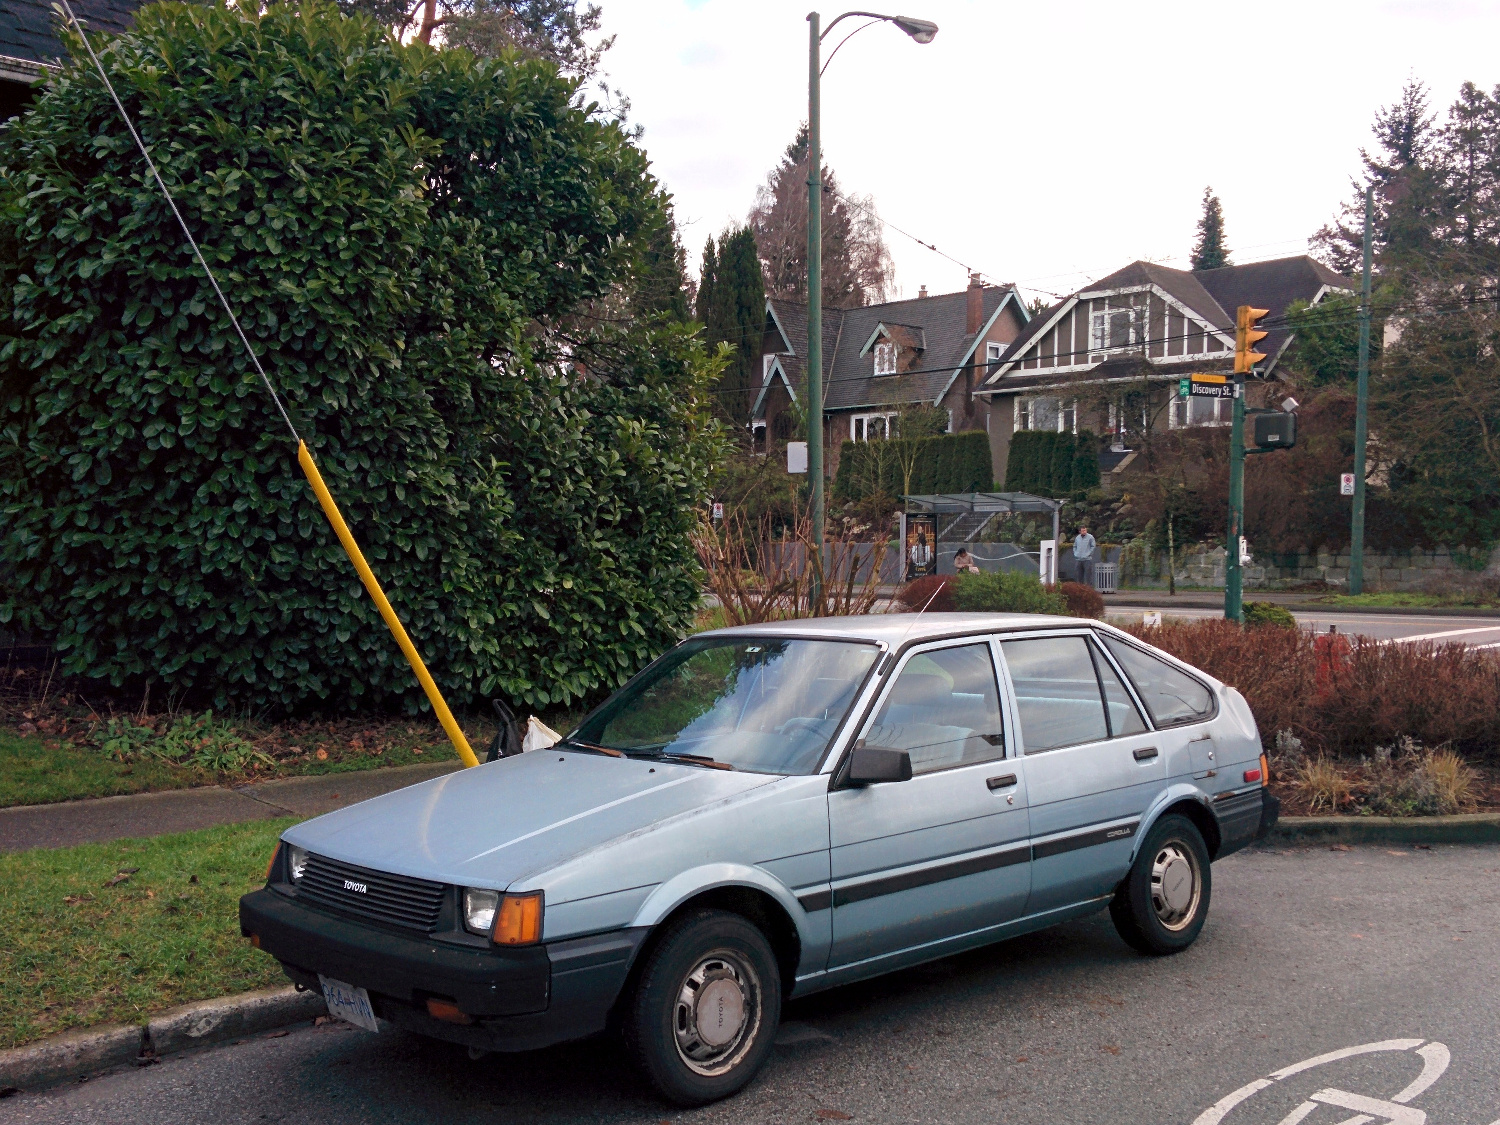 Old Parked Cars Vancouver: 1986 Toyota Corolla Hatchback